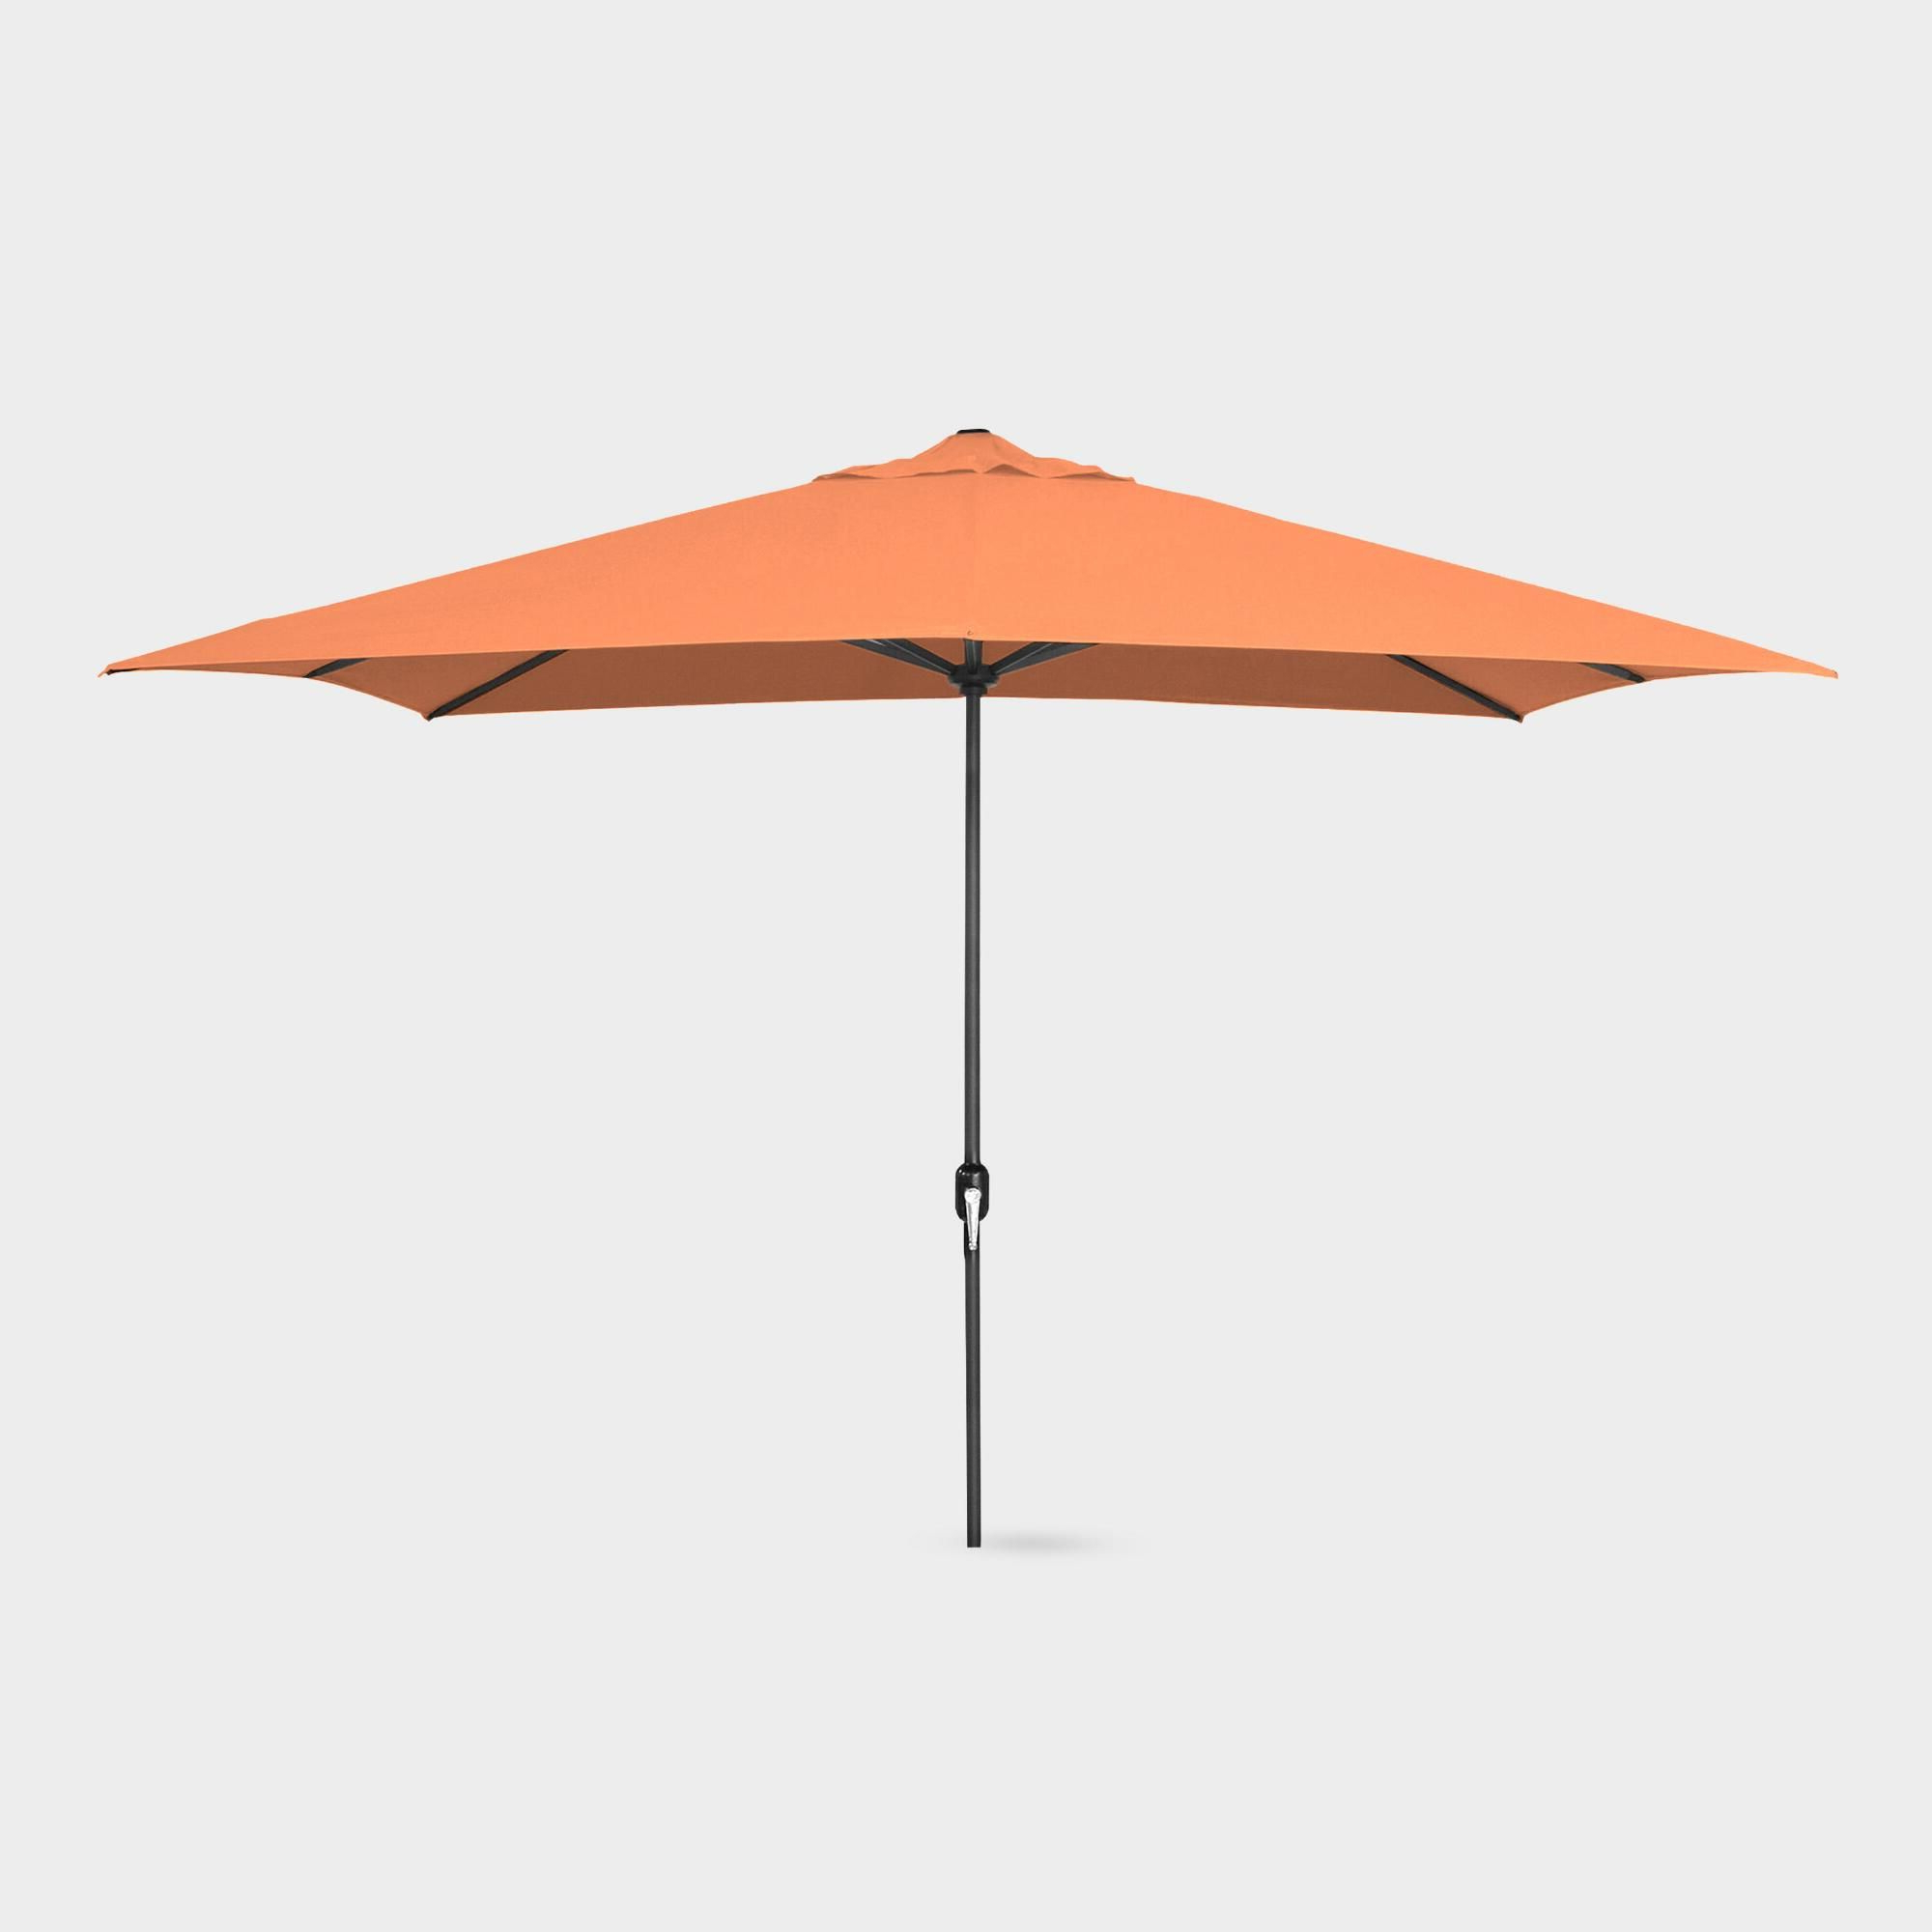 Orange Rectangular Outdoor Patio Umbrellaworld Market (View 8 of 20)